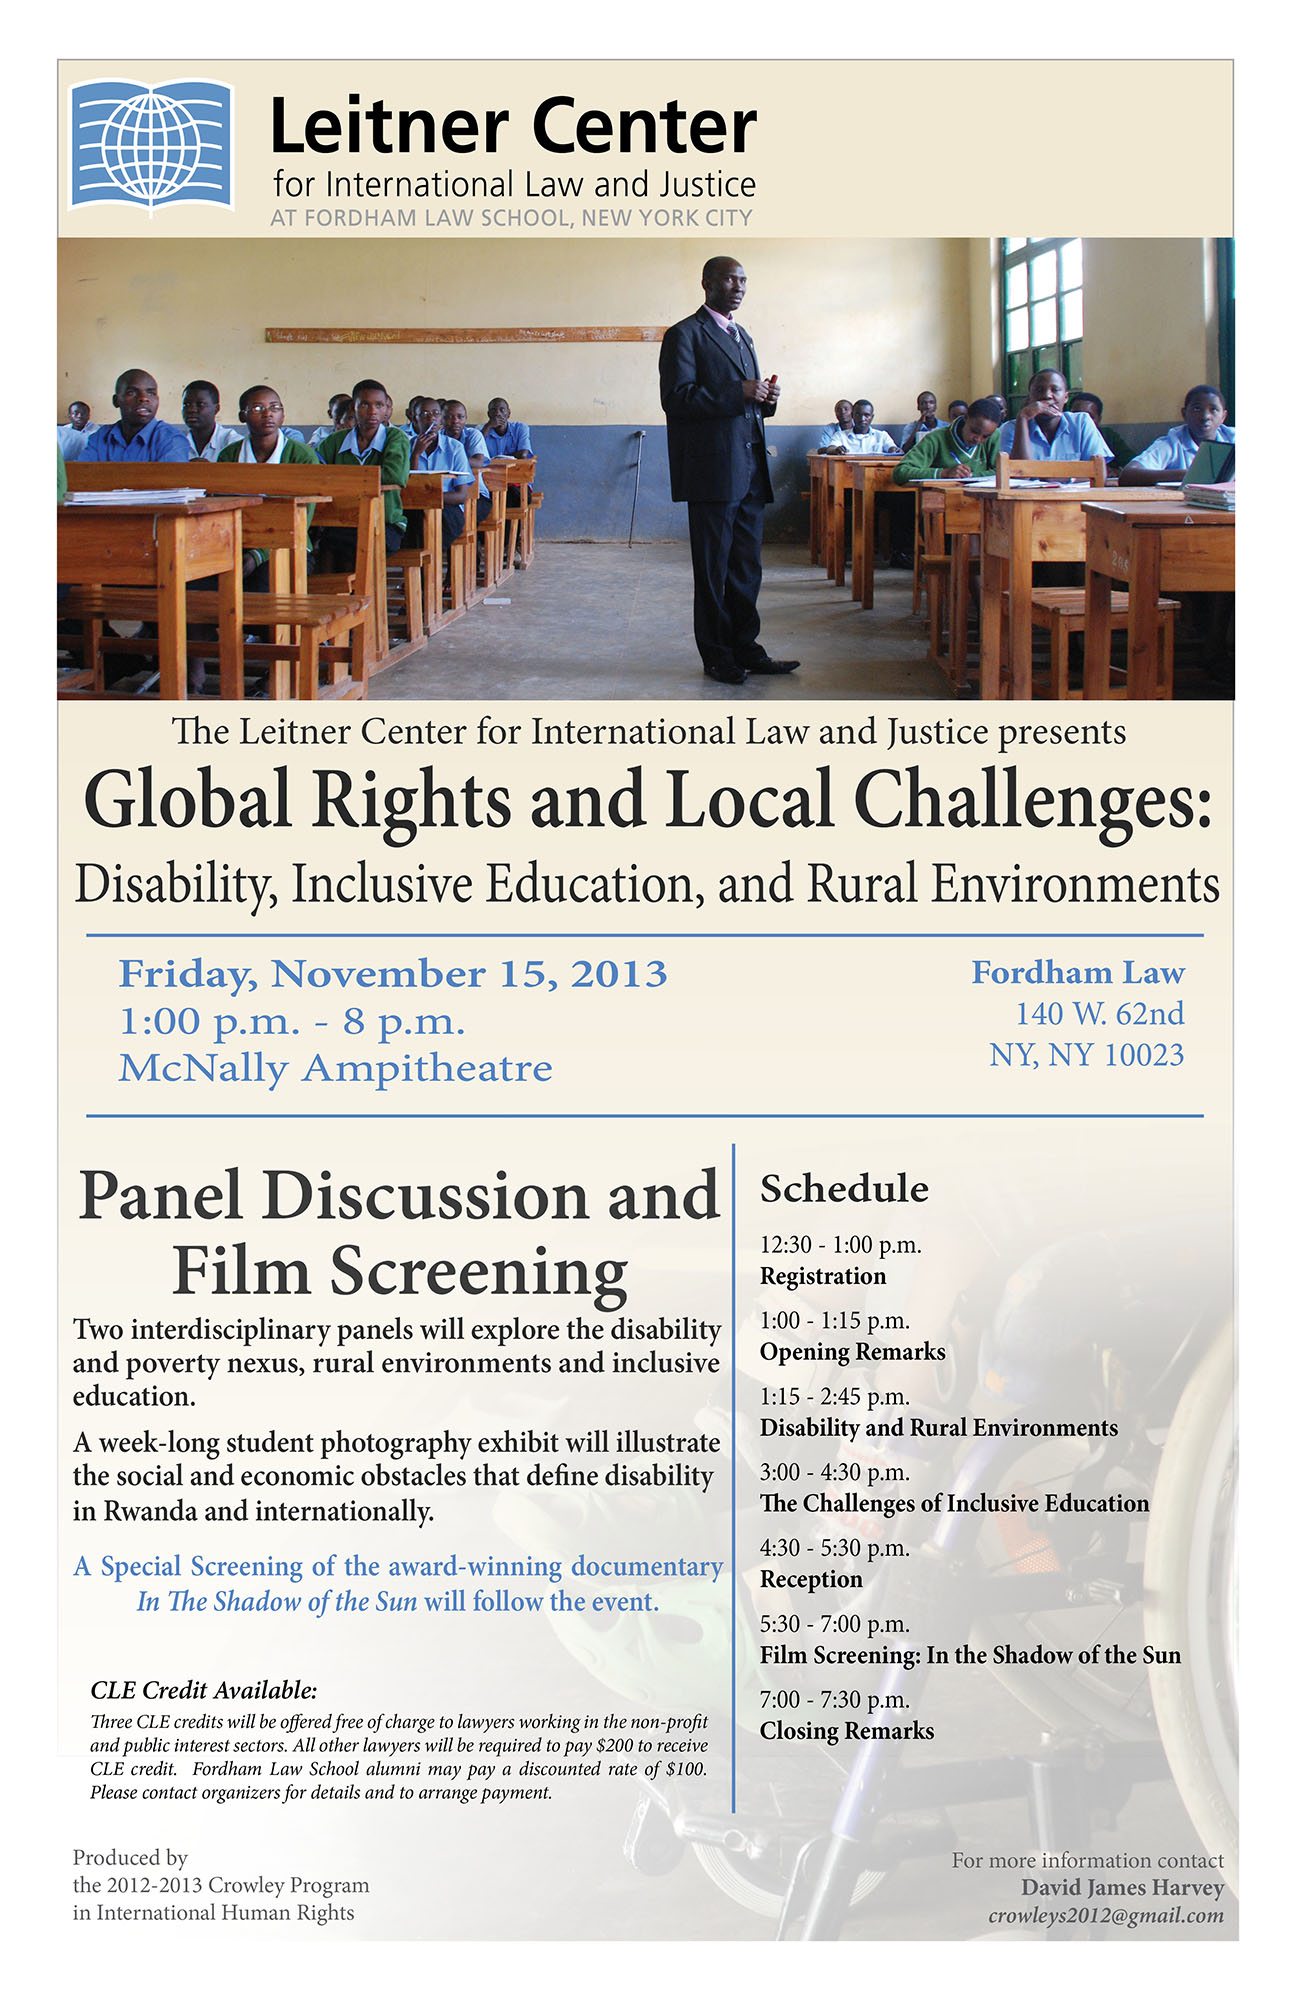 global rights and local challenges: disability, inclusive education and rural environments